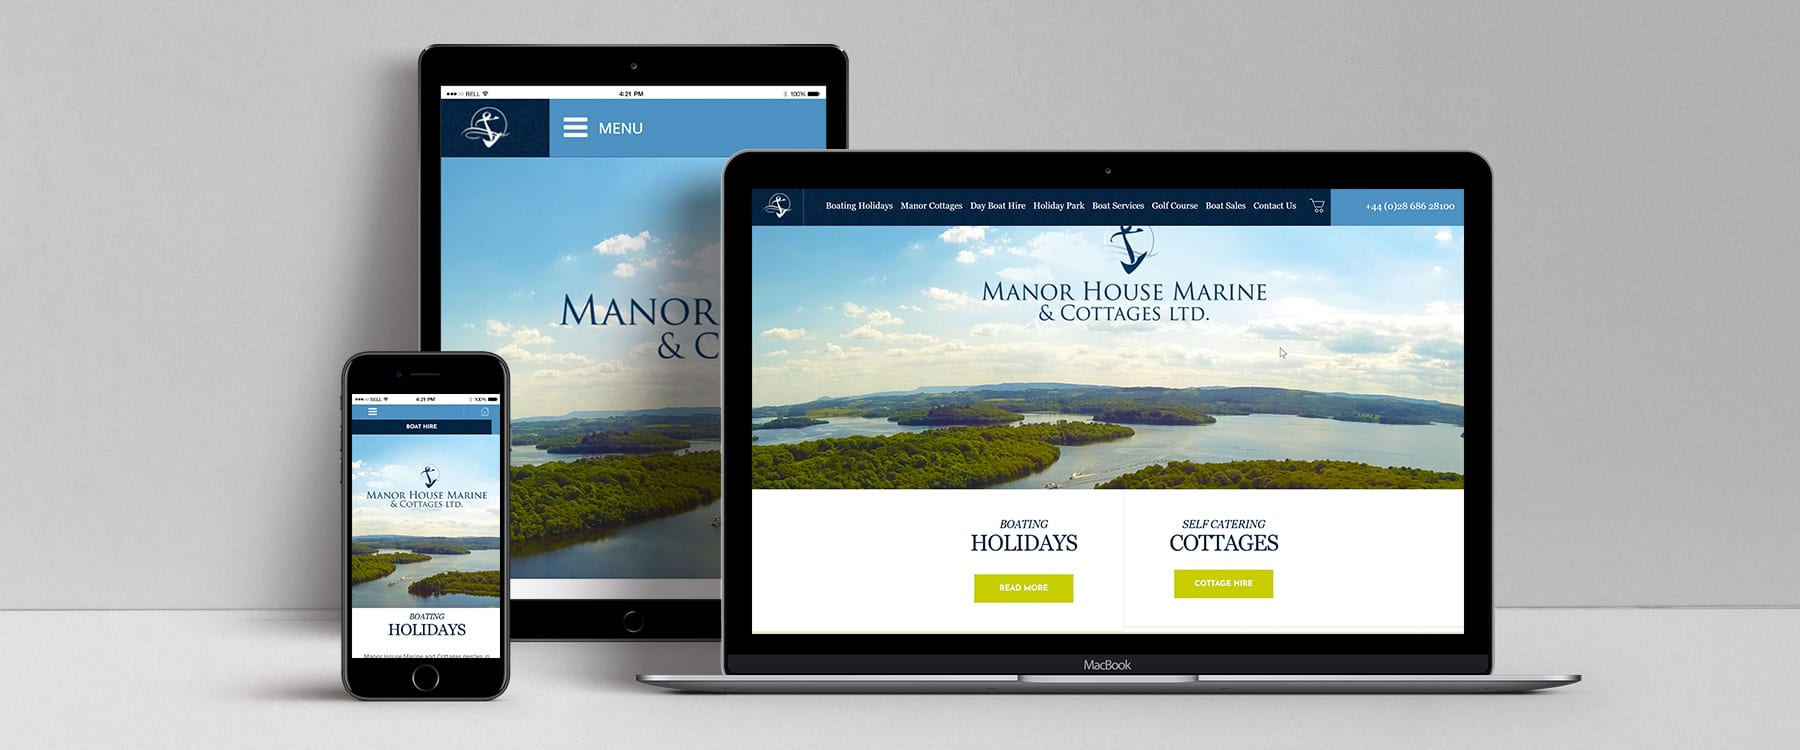 Manor House Marine & Cottages Image First